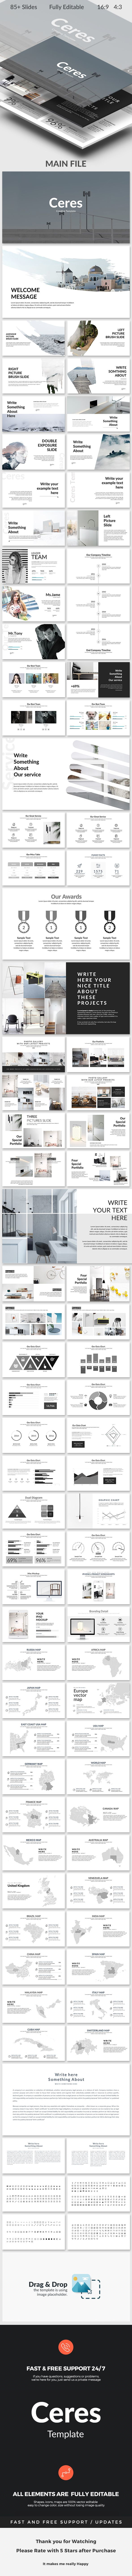 Ceres  Creative Google Slide Template  #marketing #social • Download ➝ https://graphicriver.net/item/ceres-creative-google-slide-template/18542949?ref=pxcr